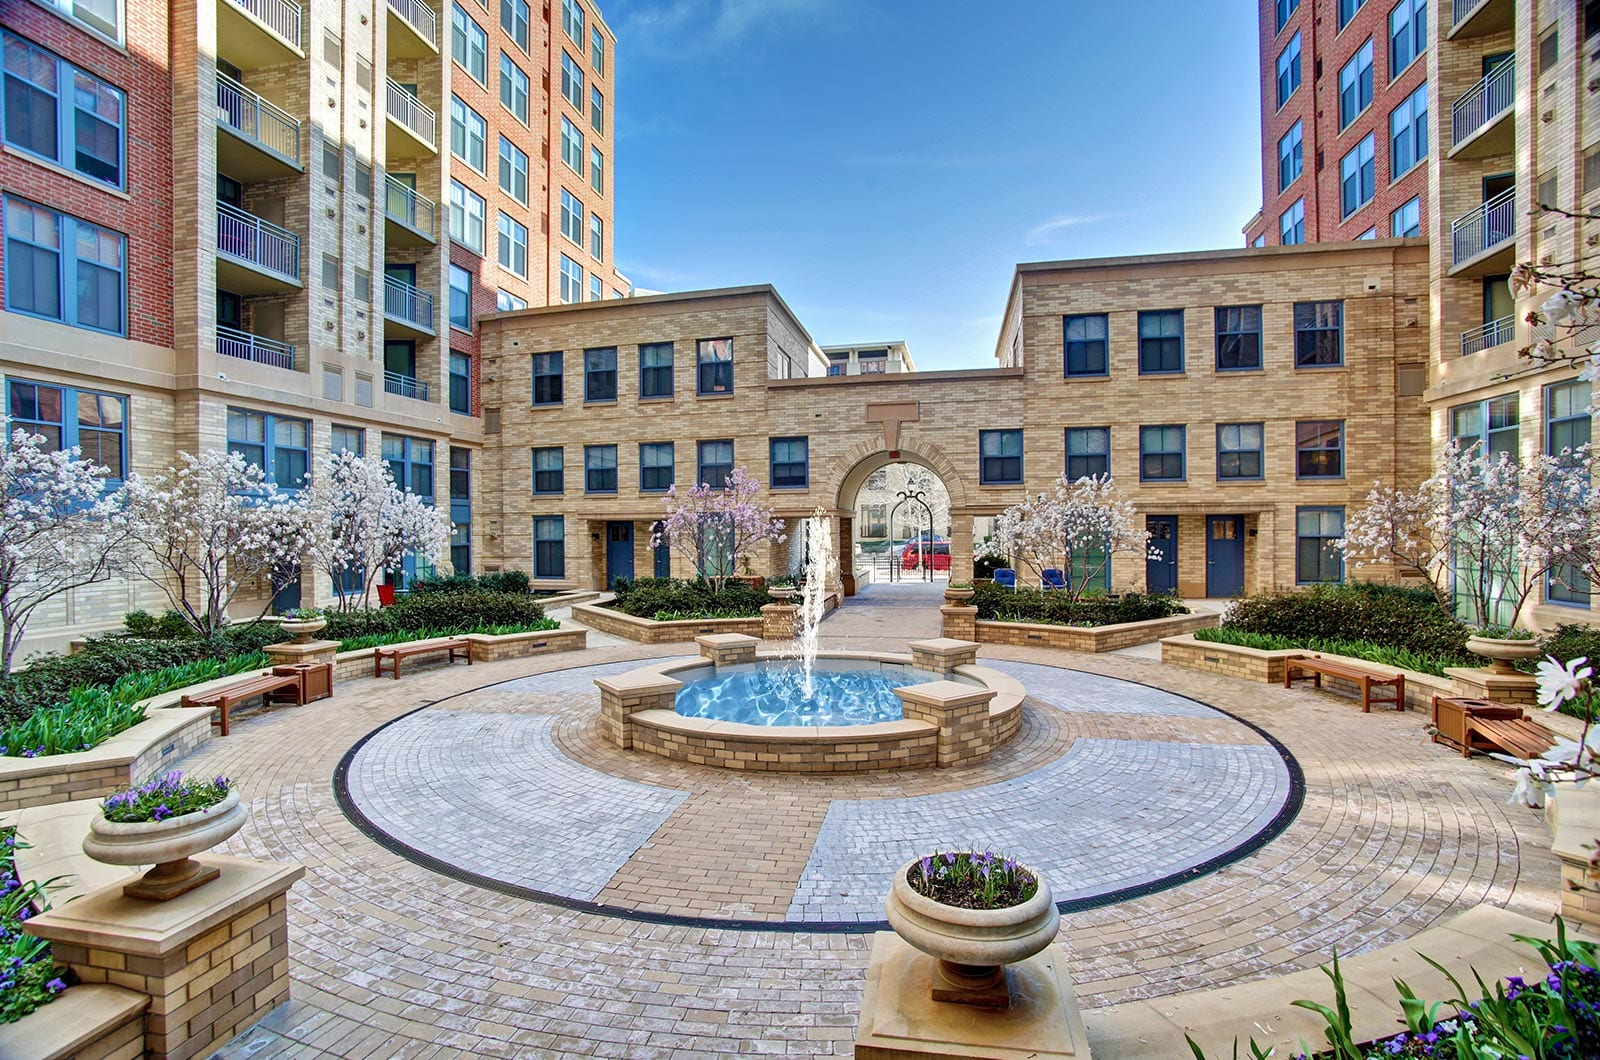 Commercial Real Estate Virtual Tours   Commercial Real Estate Virtual Tour Company